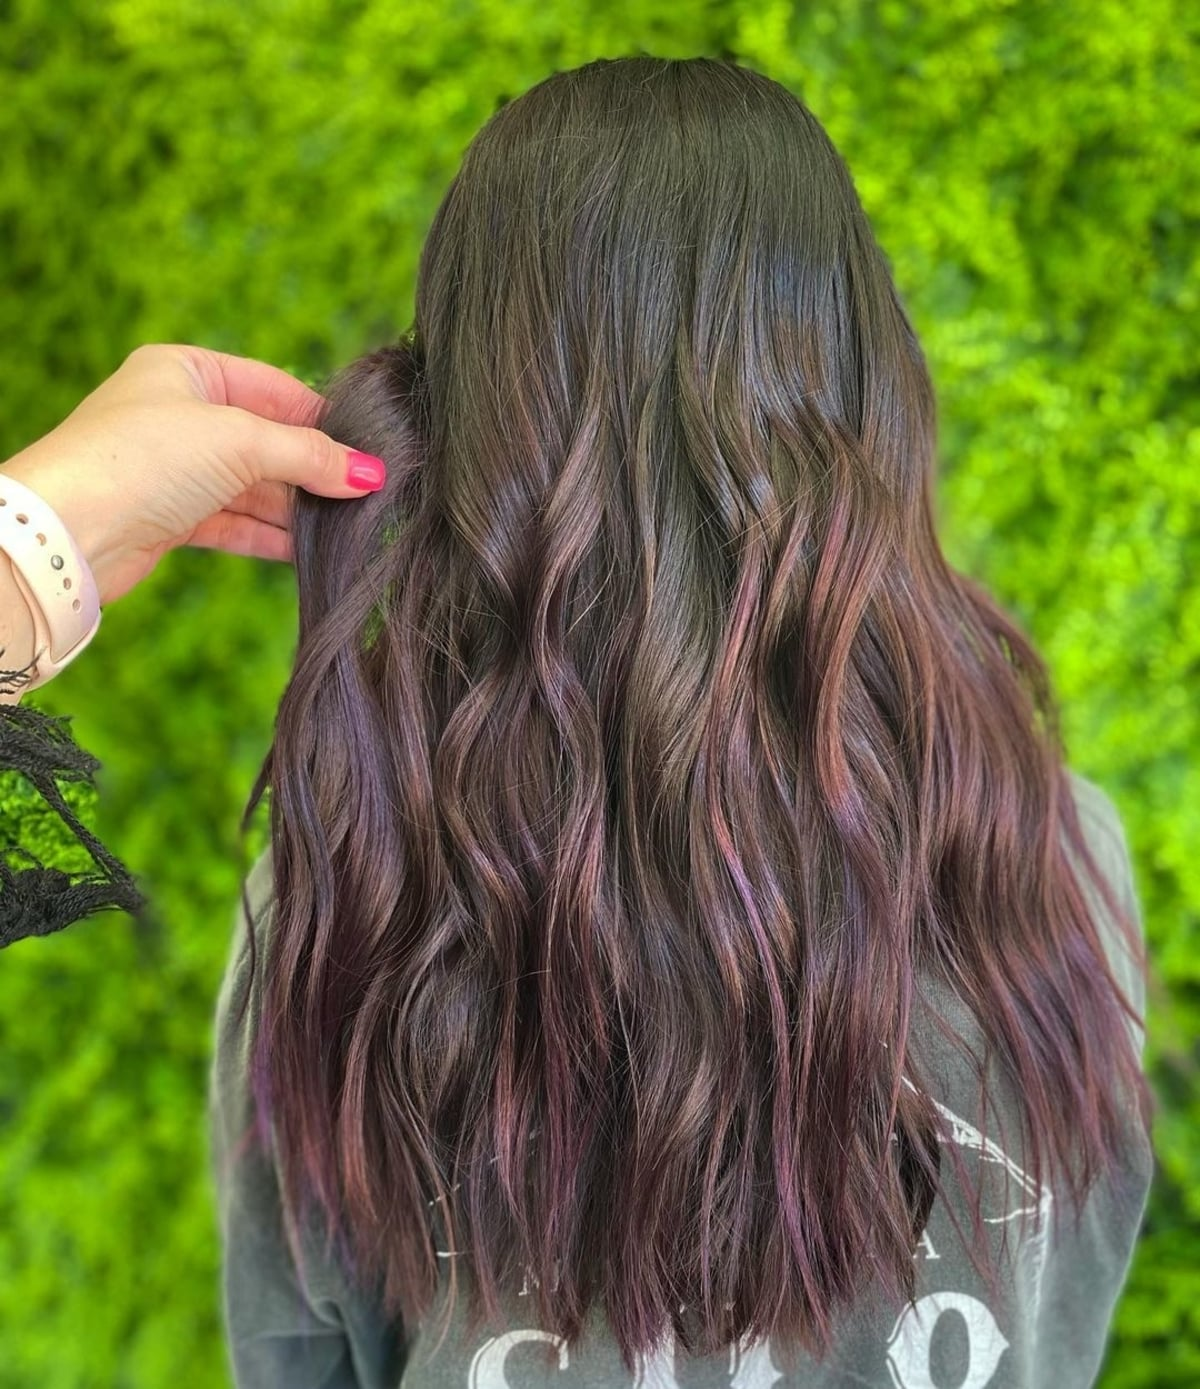 These 26 Plum Hair Color Ideas are Totally Trending Right Now